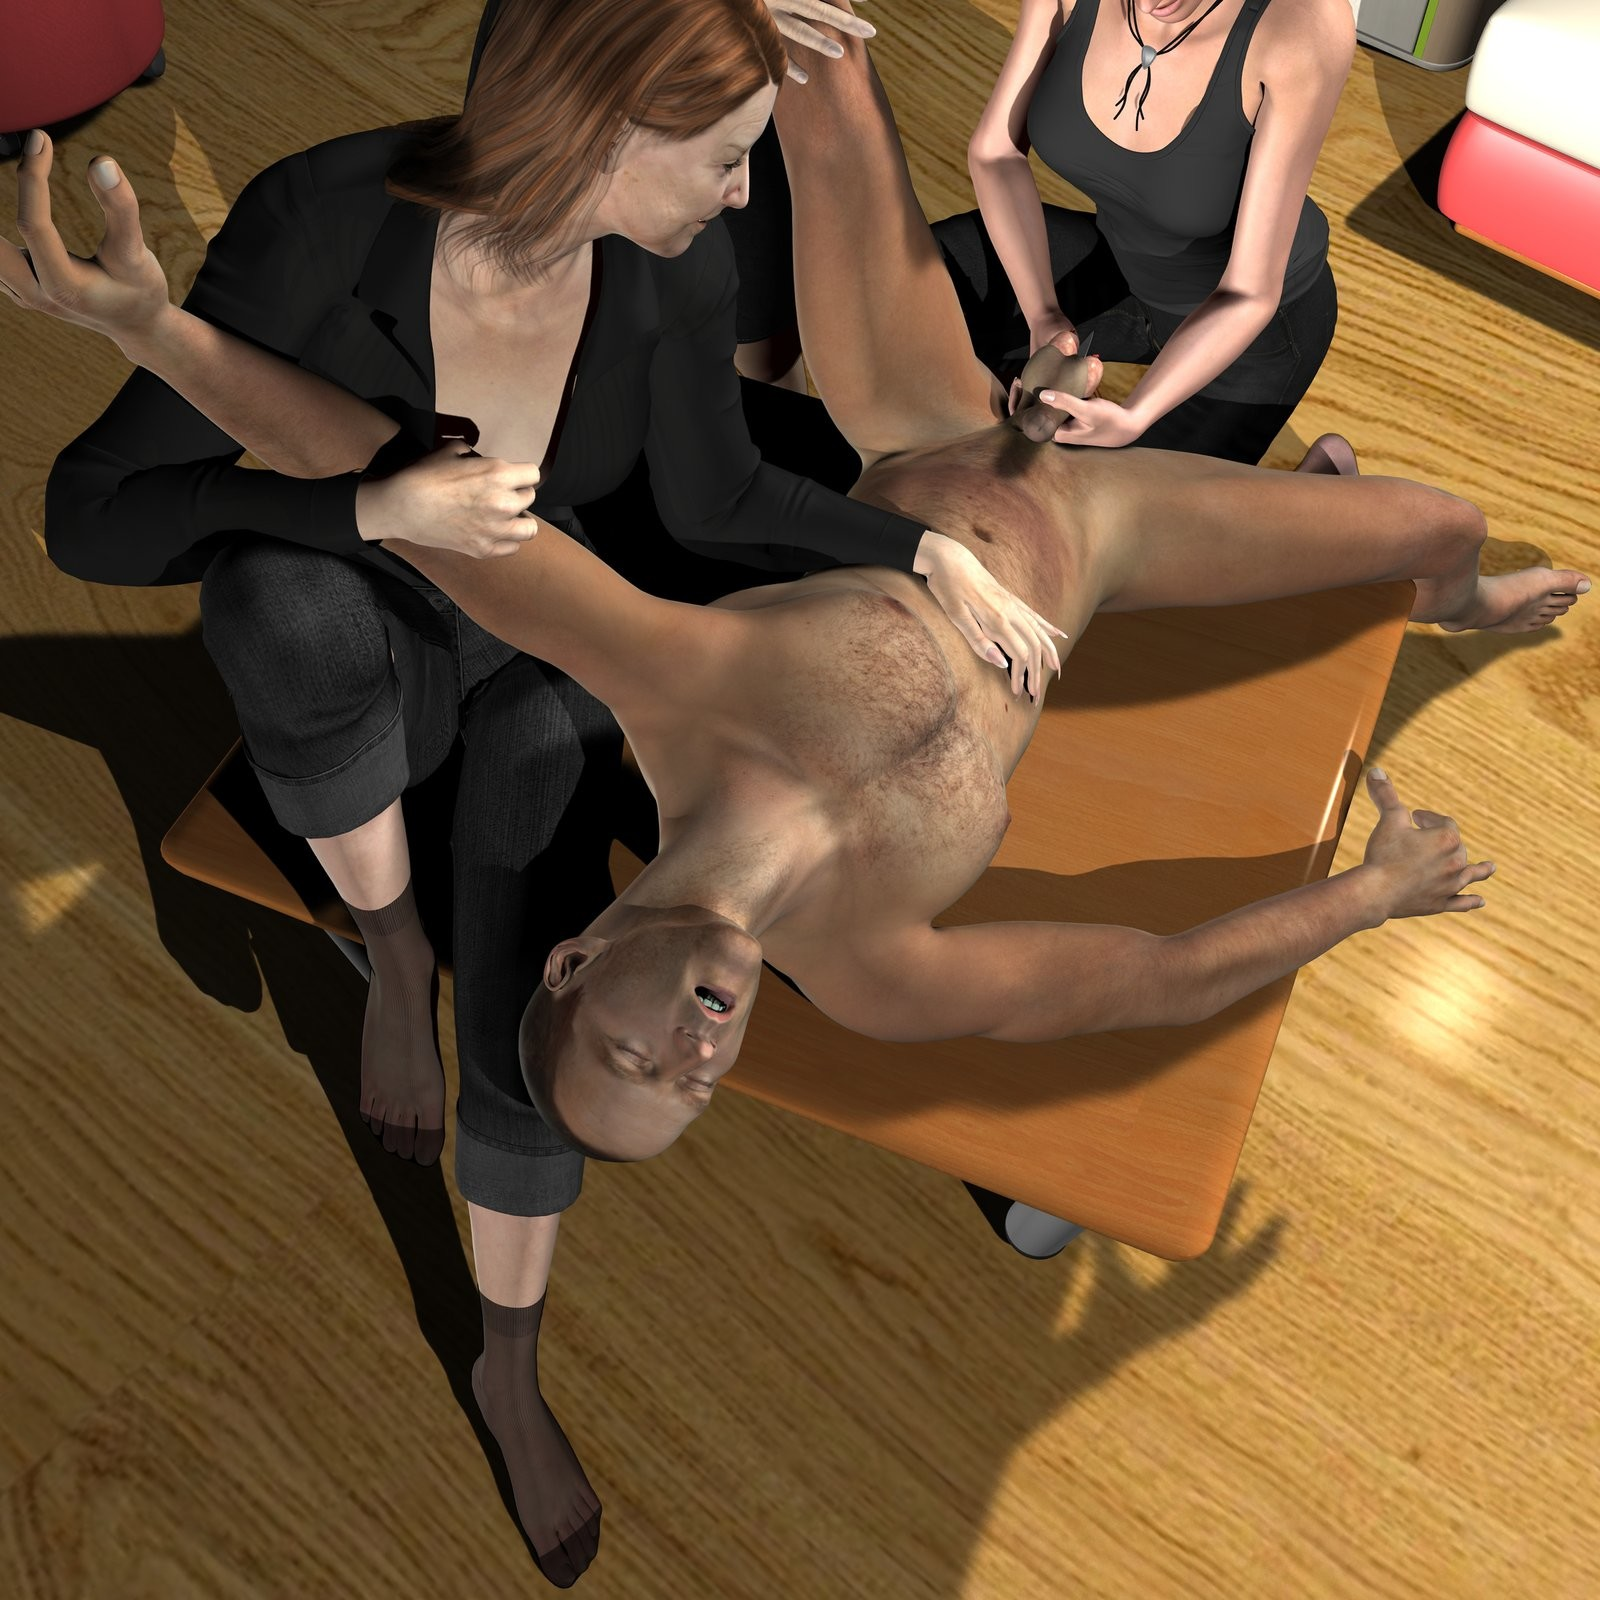 pity, mature nude women in bondage theme simply